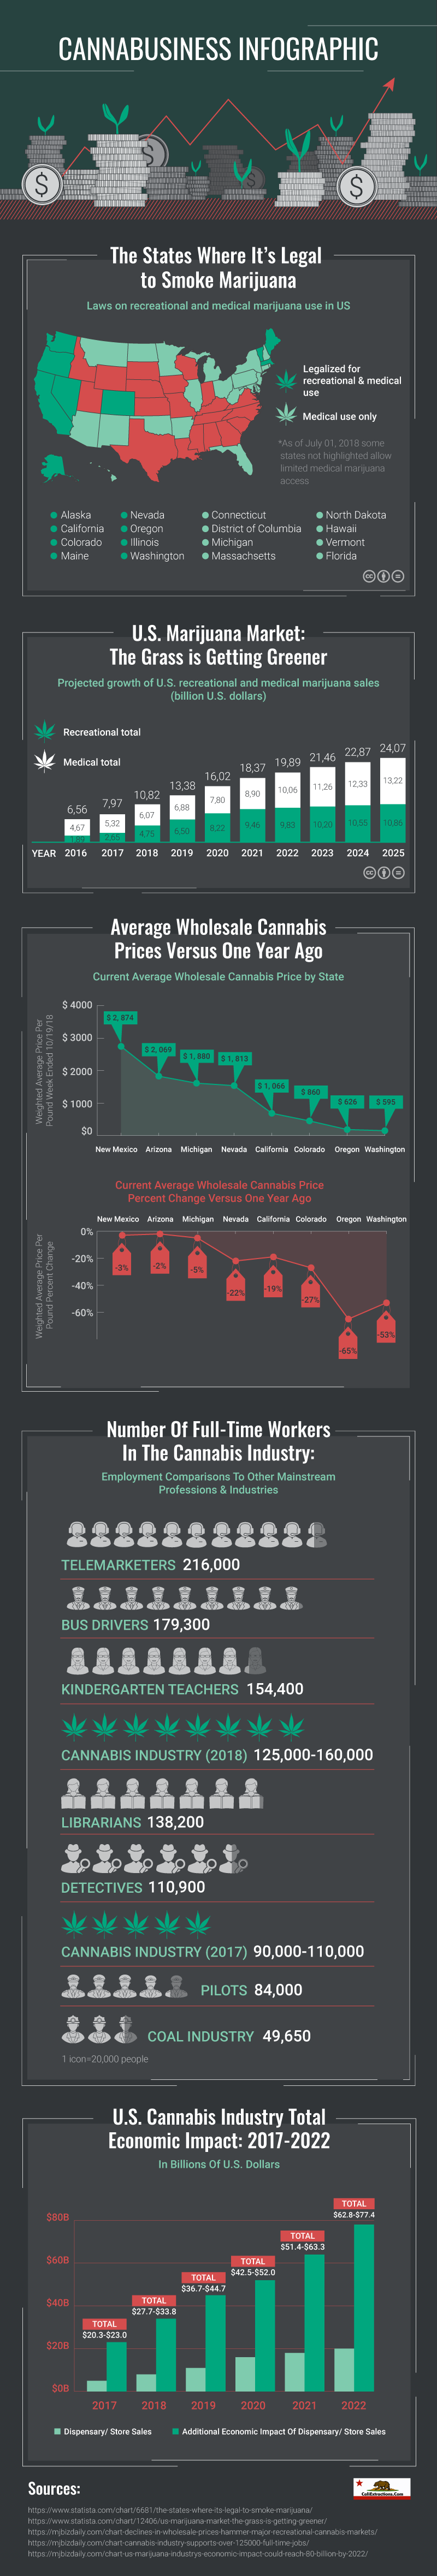 Cannabis Infographic Economics of Cannabis